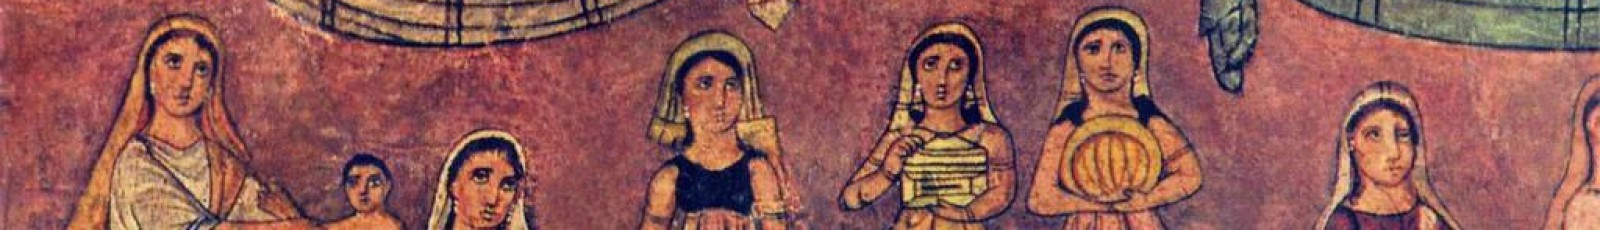 cropped-dura_europos_fresco_moses_from_river1353023046692.jpg